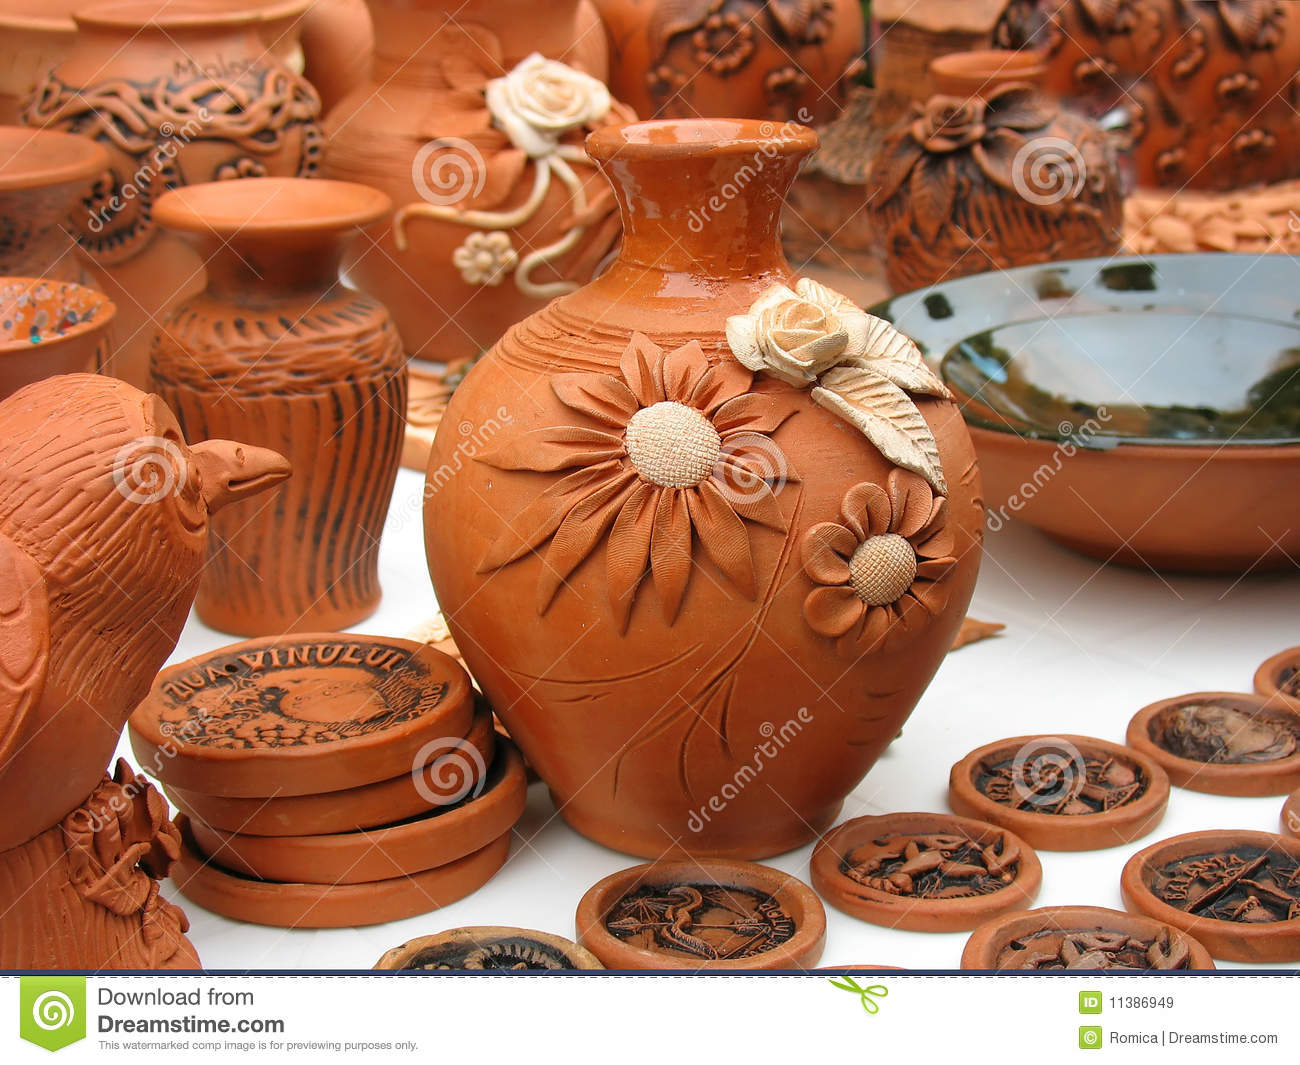 Handmade Clay Pots In A Workshop Stock Image - Image of dinner, clay:  11386949